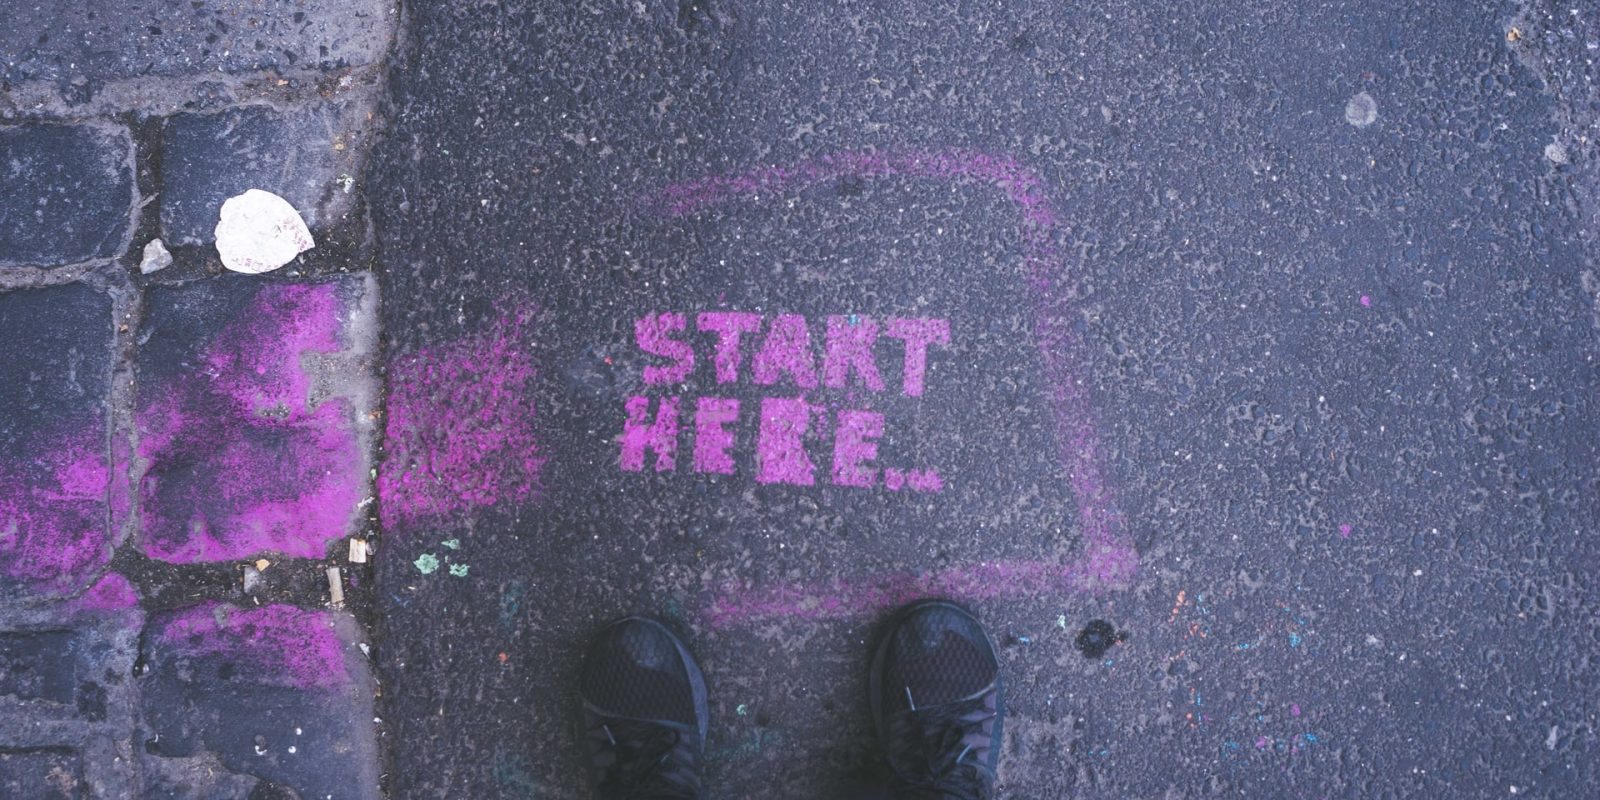 Pink Start Here text